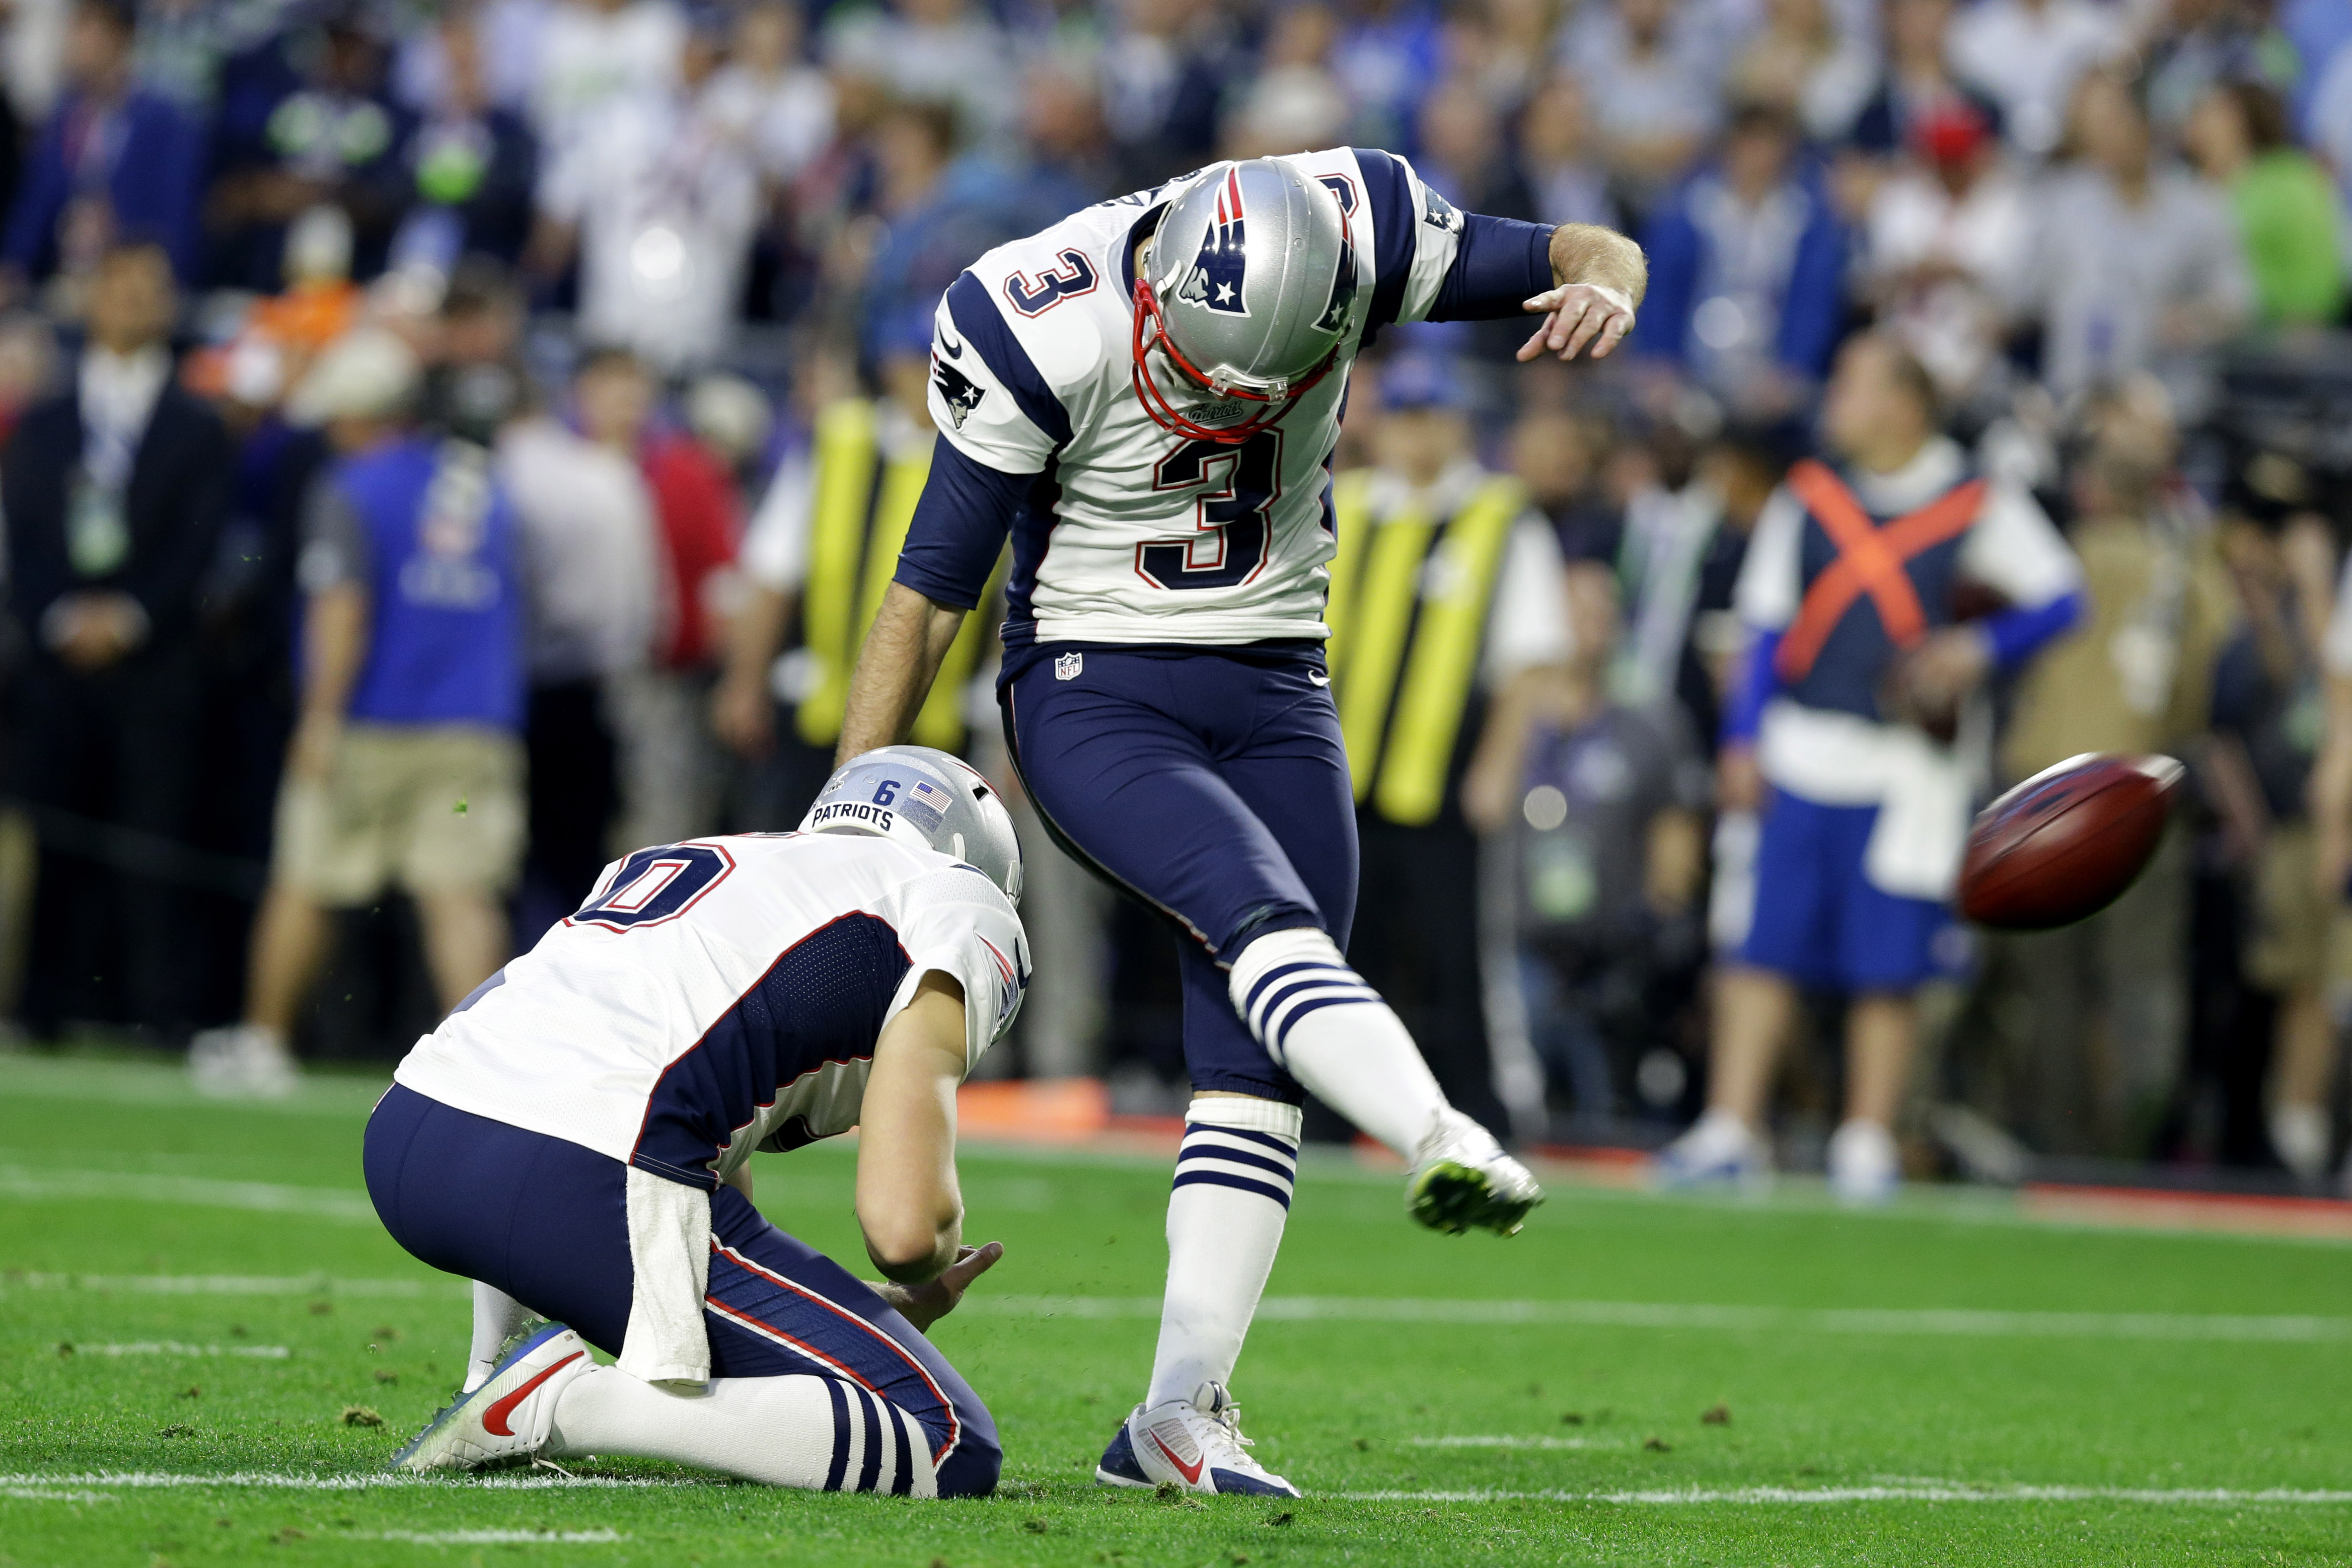 FILE - In this Feb. 1, 2015, file photo, New England Patriots kicker Stephen Gostkowski (3) makes the extra point after a touchdown against the Seattle Seahawks during the first half of NFL Super Bowl XLIX football game in Glendale, Ariz. While team owner